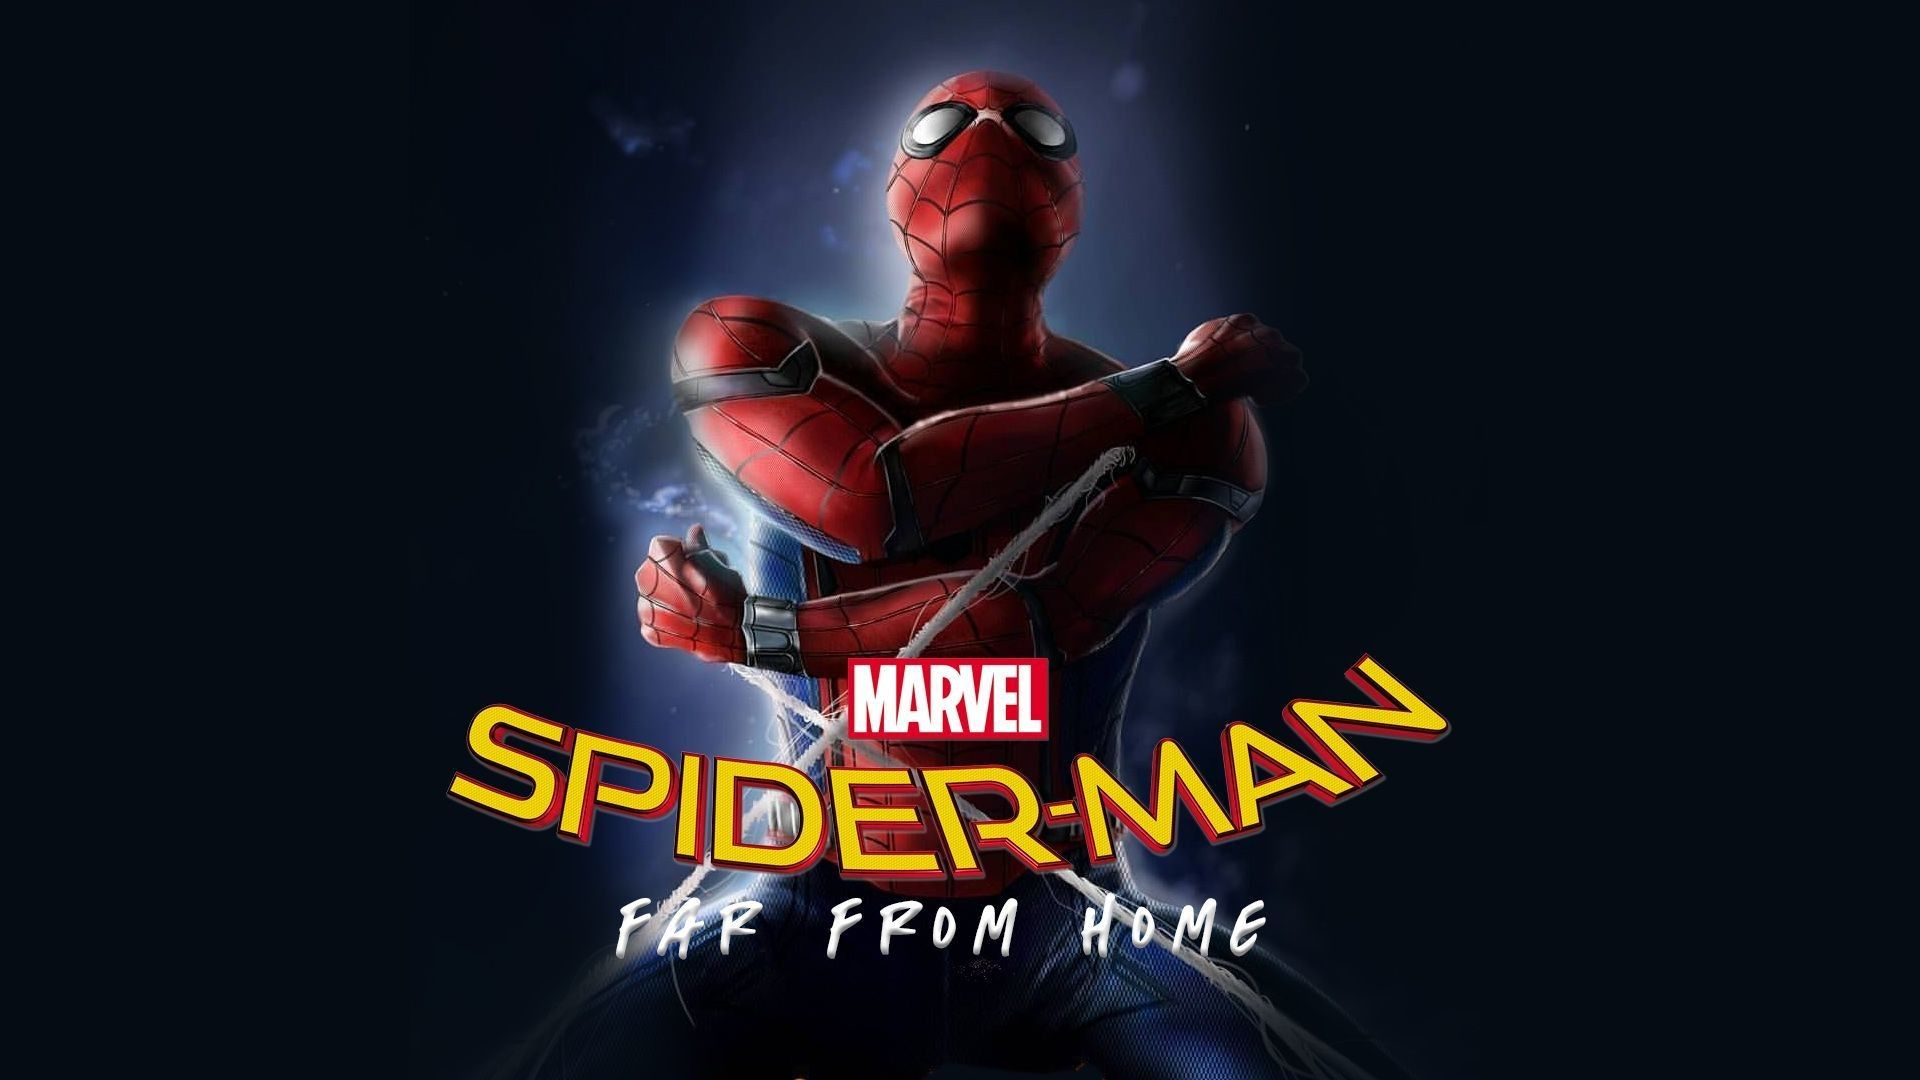 Wallpapers SpiderMan Far From Home Best Movie Poster